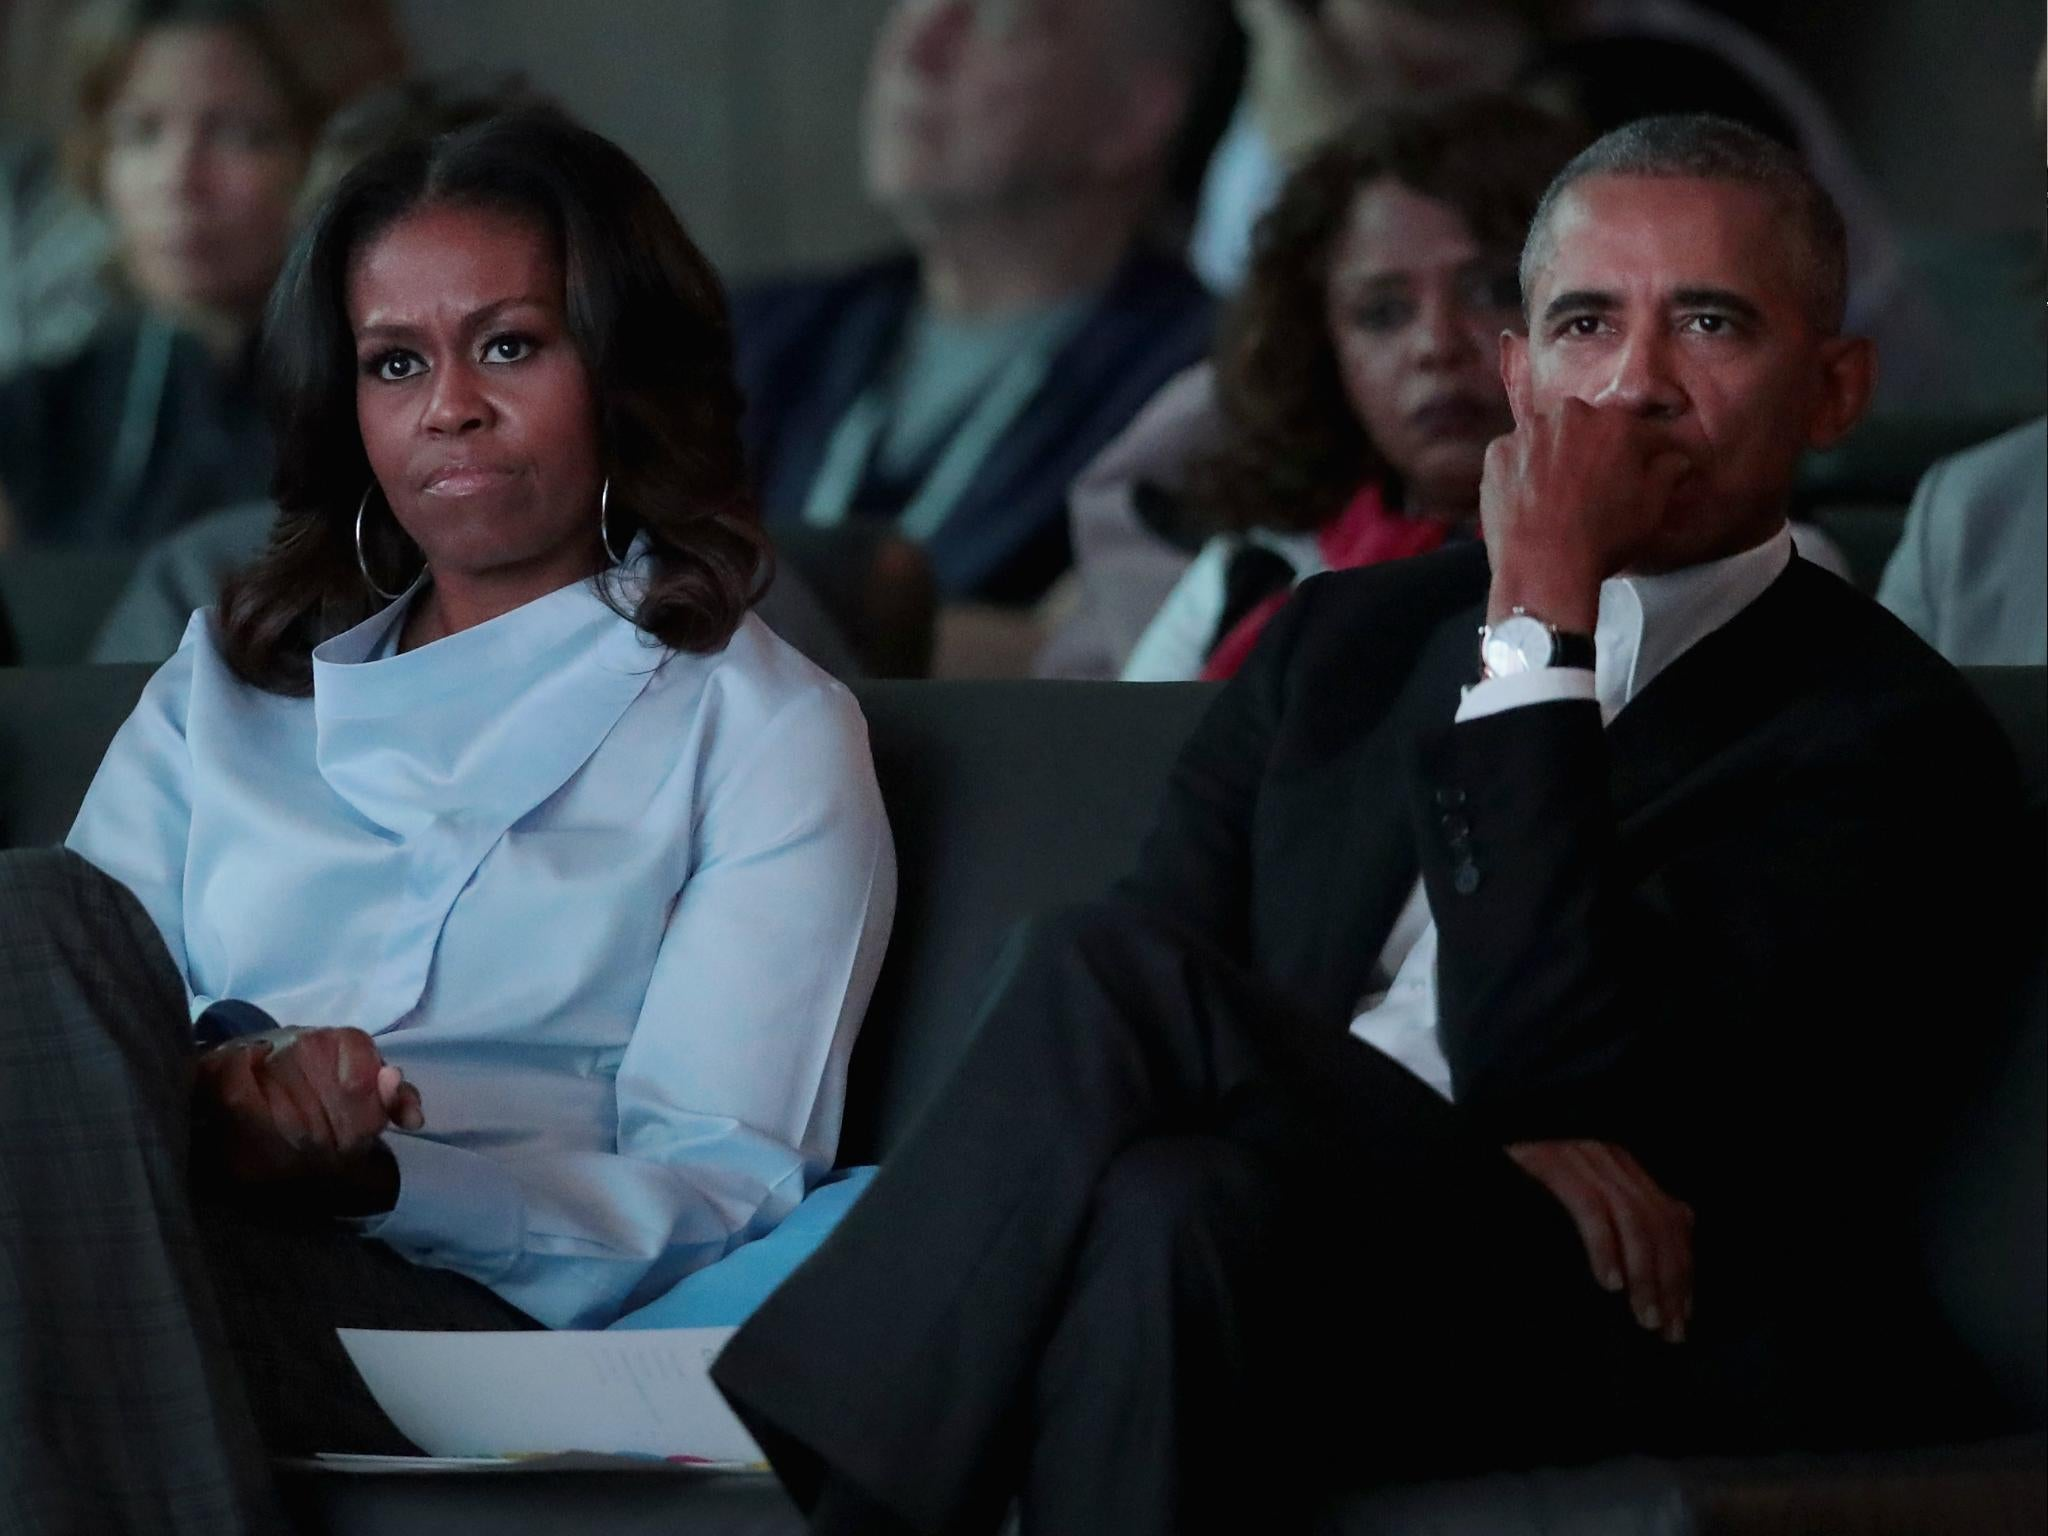 Barack and Michelle Obama have a message for the students fighting for tougher gun controls